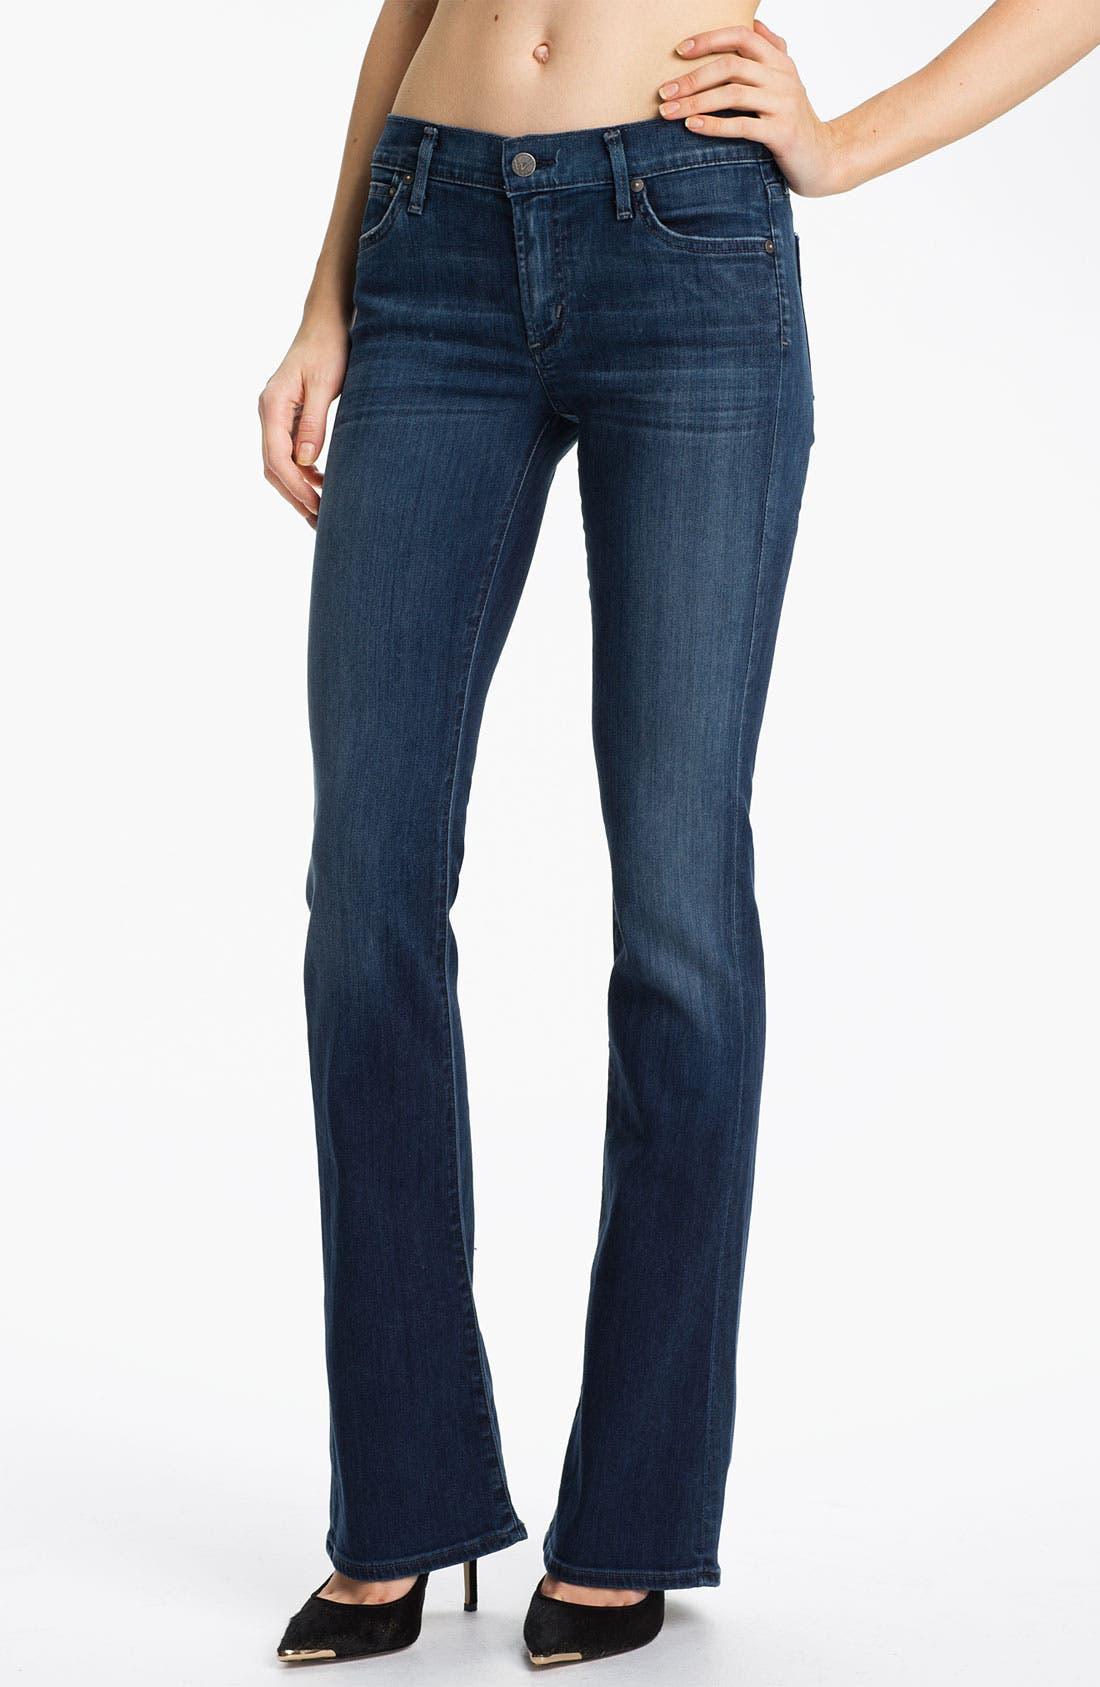 Alternate Image 1 Selected - Citizens of Humanity 'Emmanuelle' Slim Bootcut Jeans (Secret)